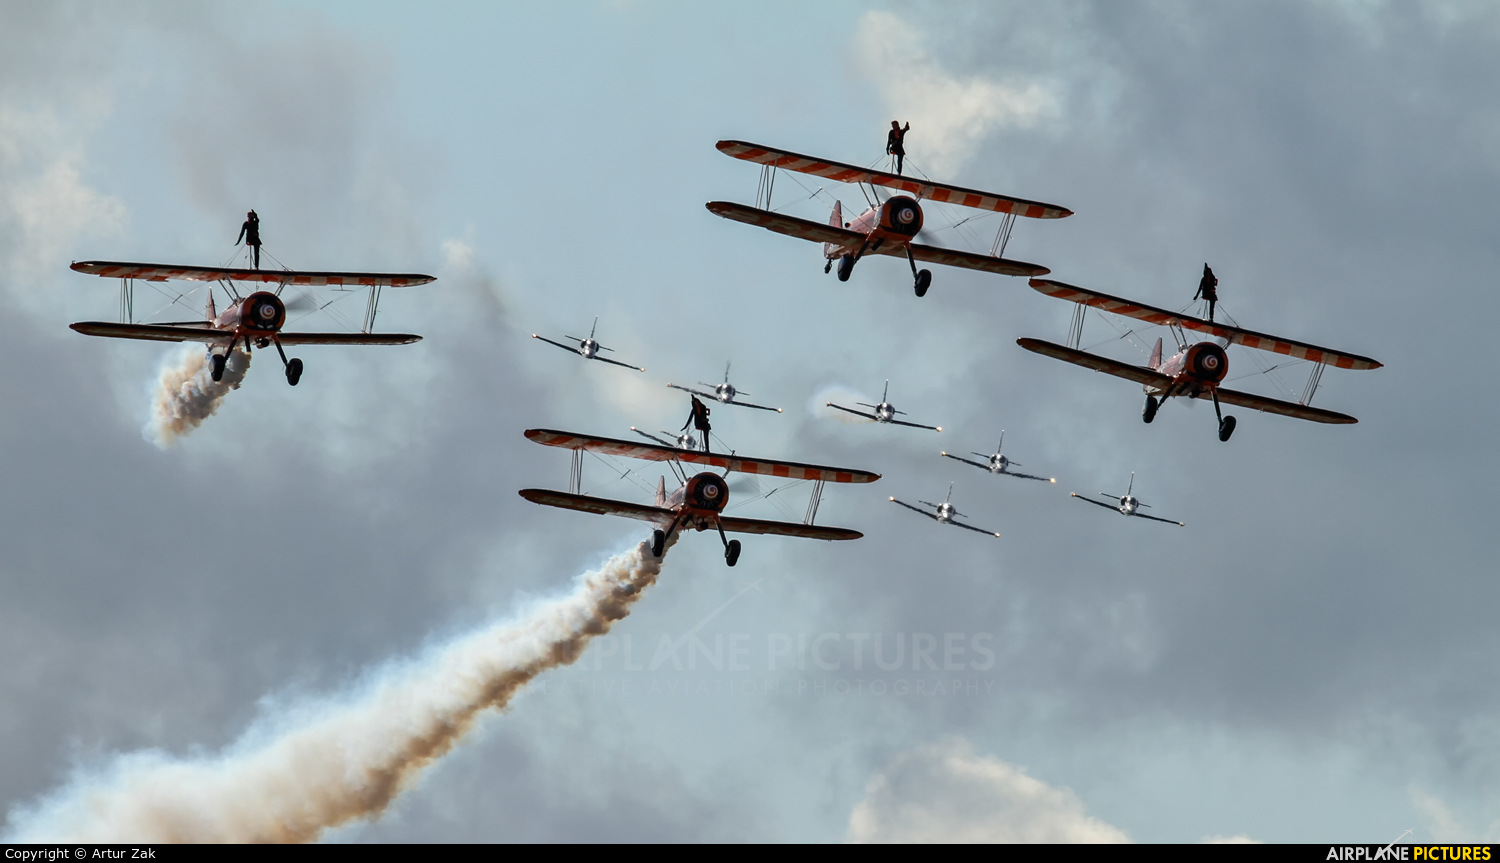 Breitling Wingwalkers N5057V aircraft at Fairford